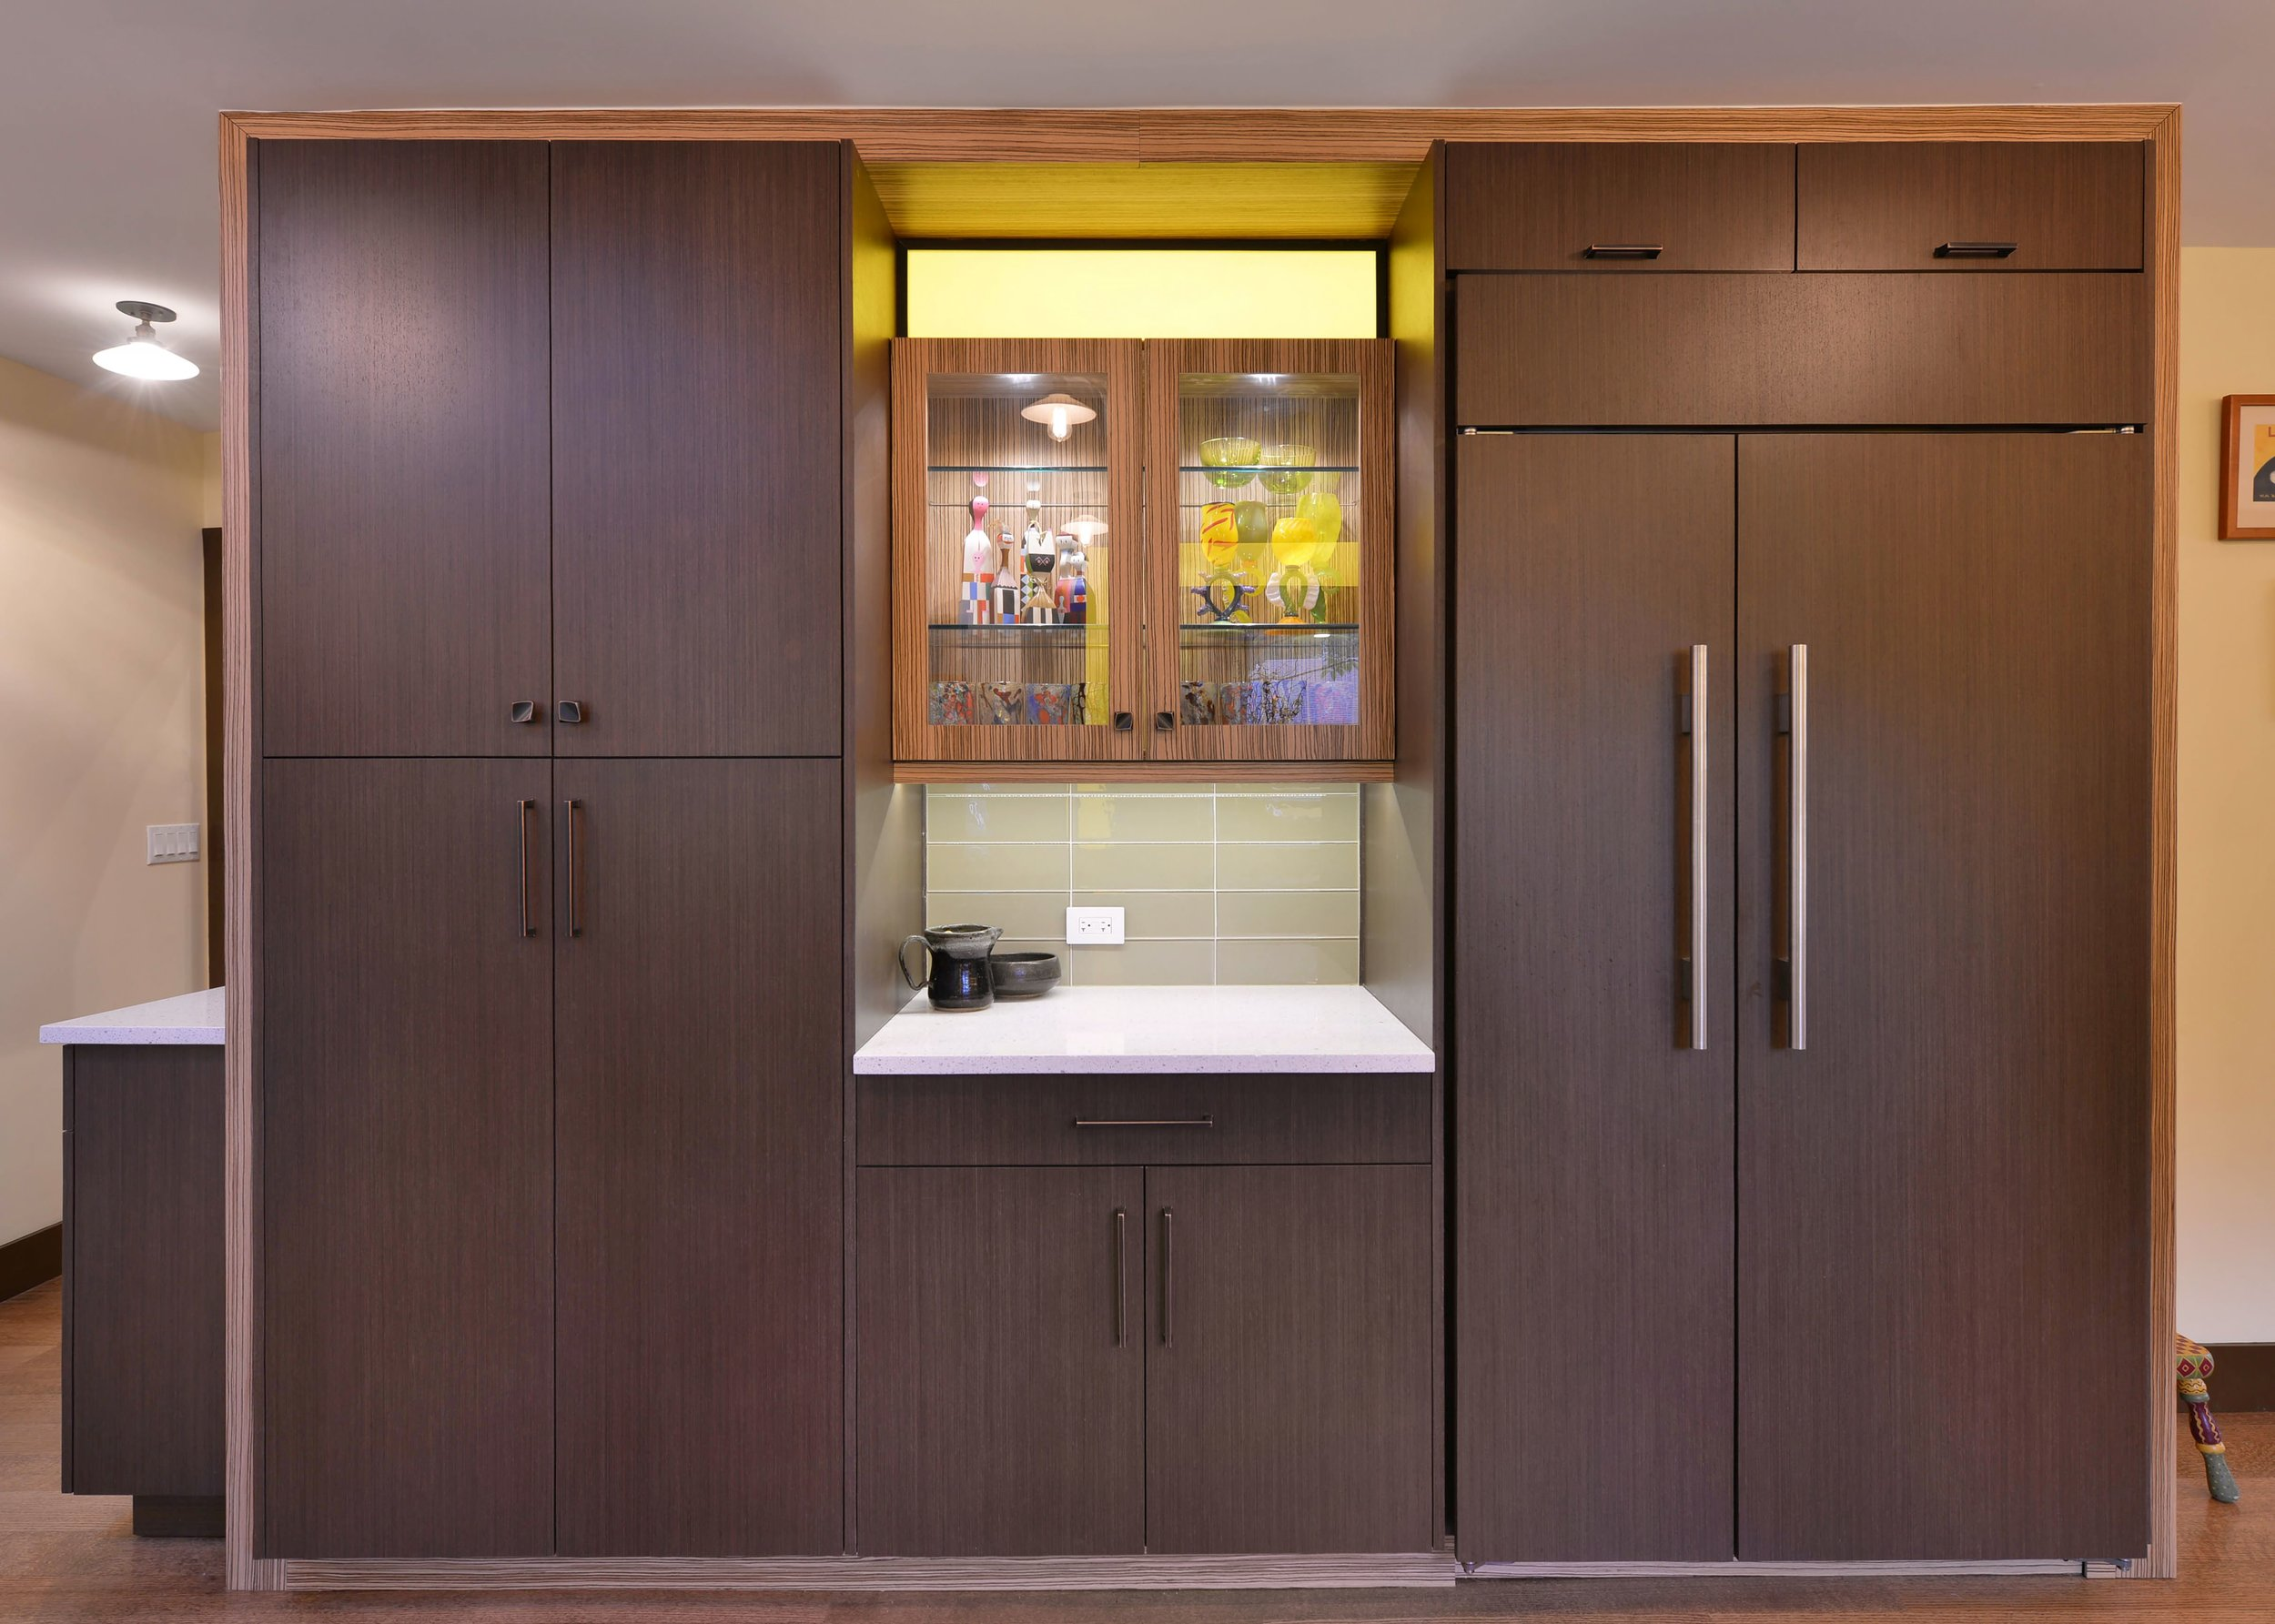 Contemporary style kitchen with wooden cabinets and glass door upper cabinet